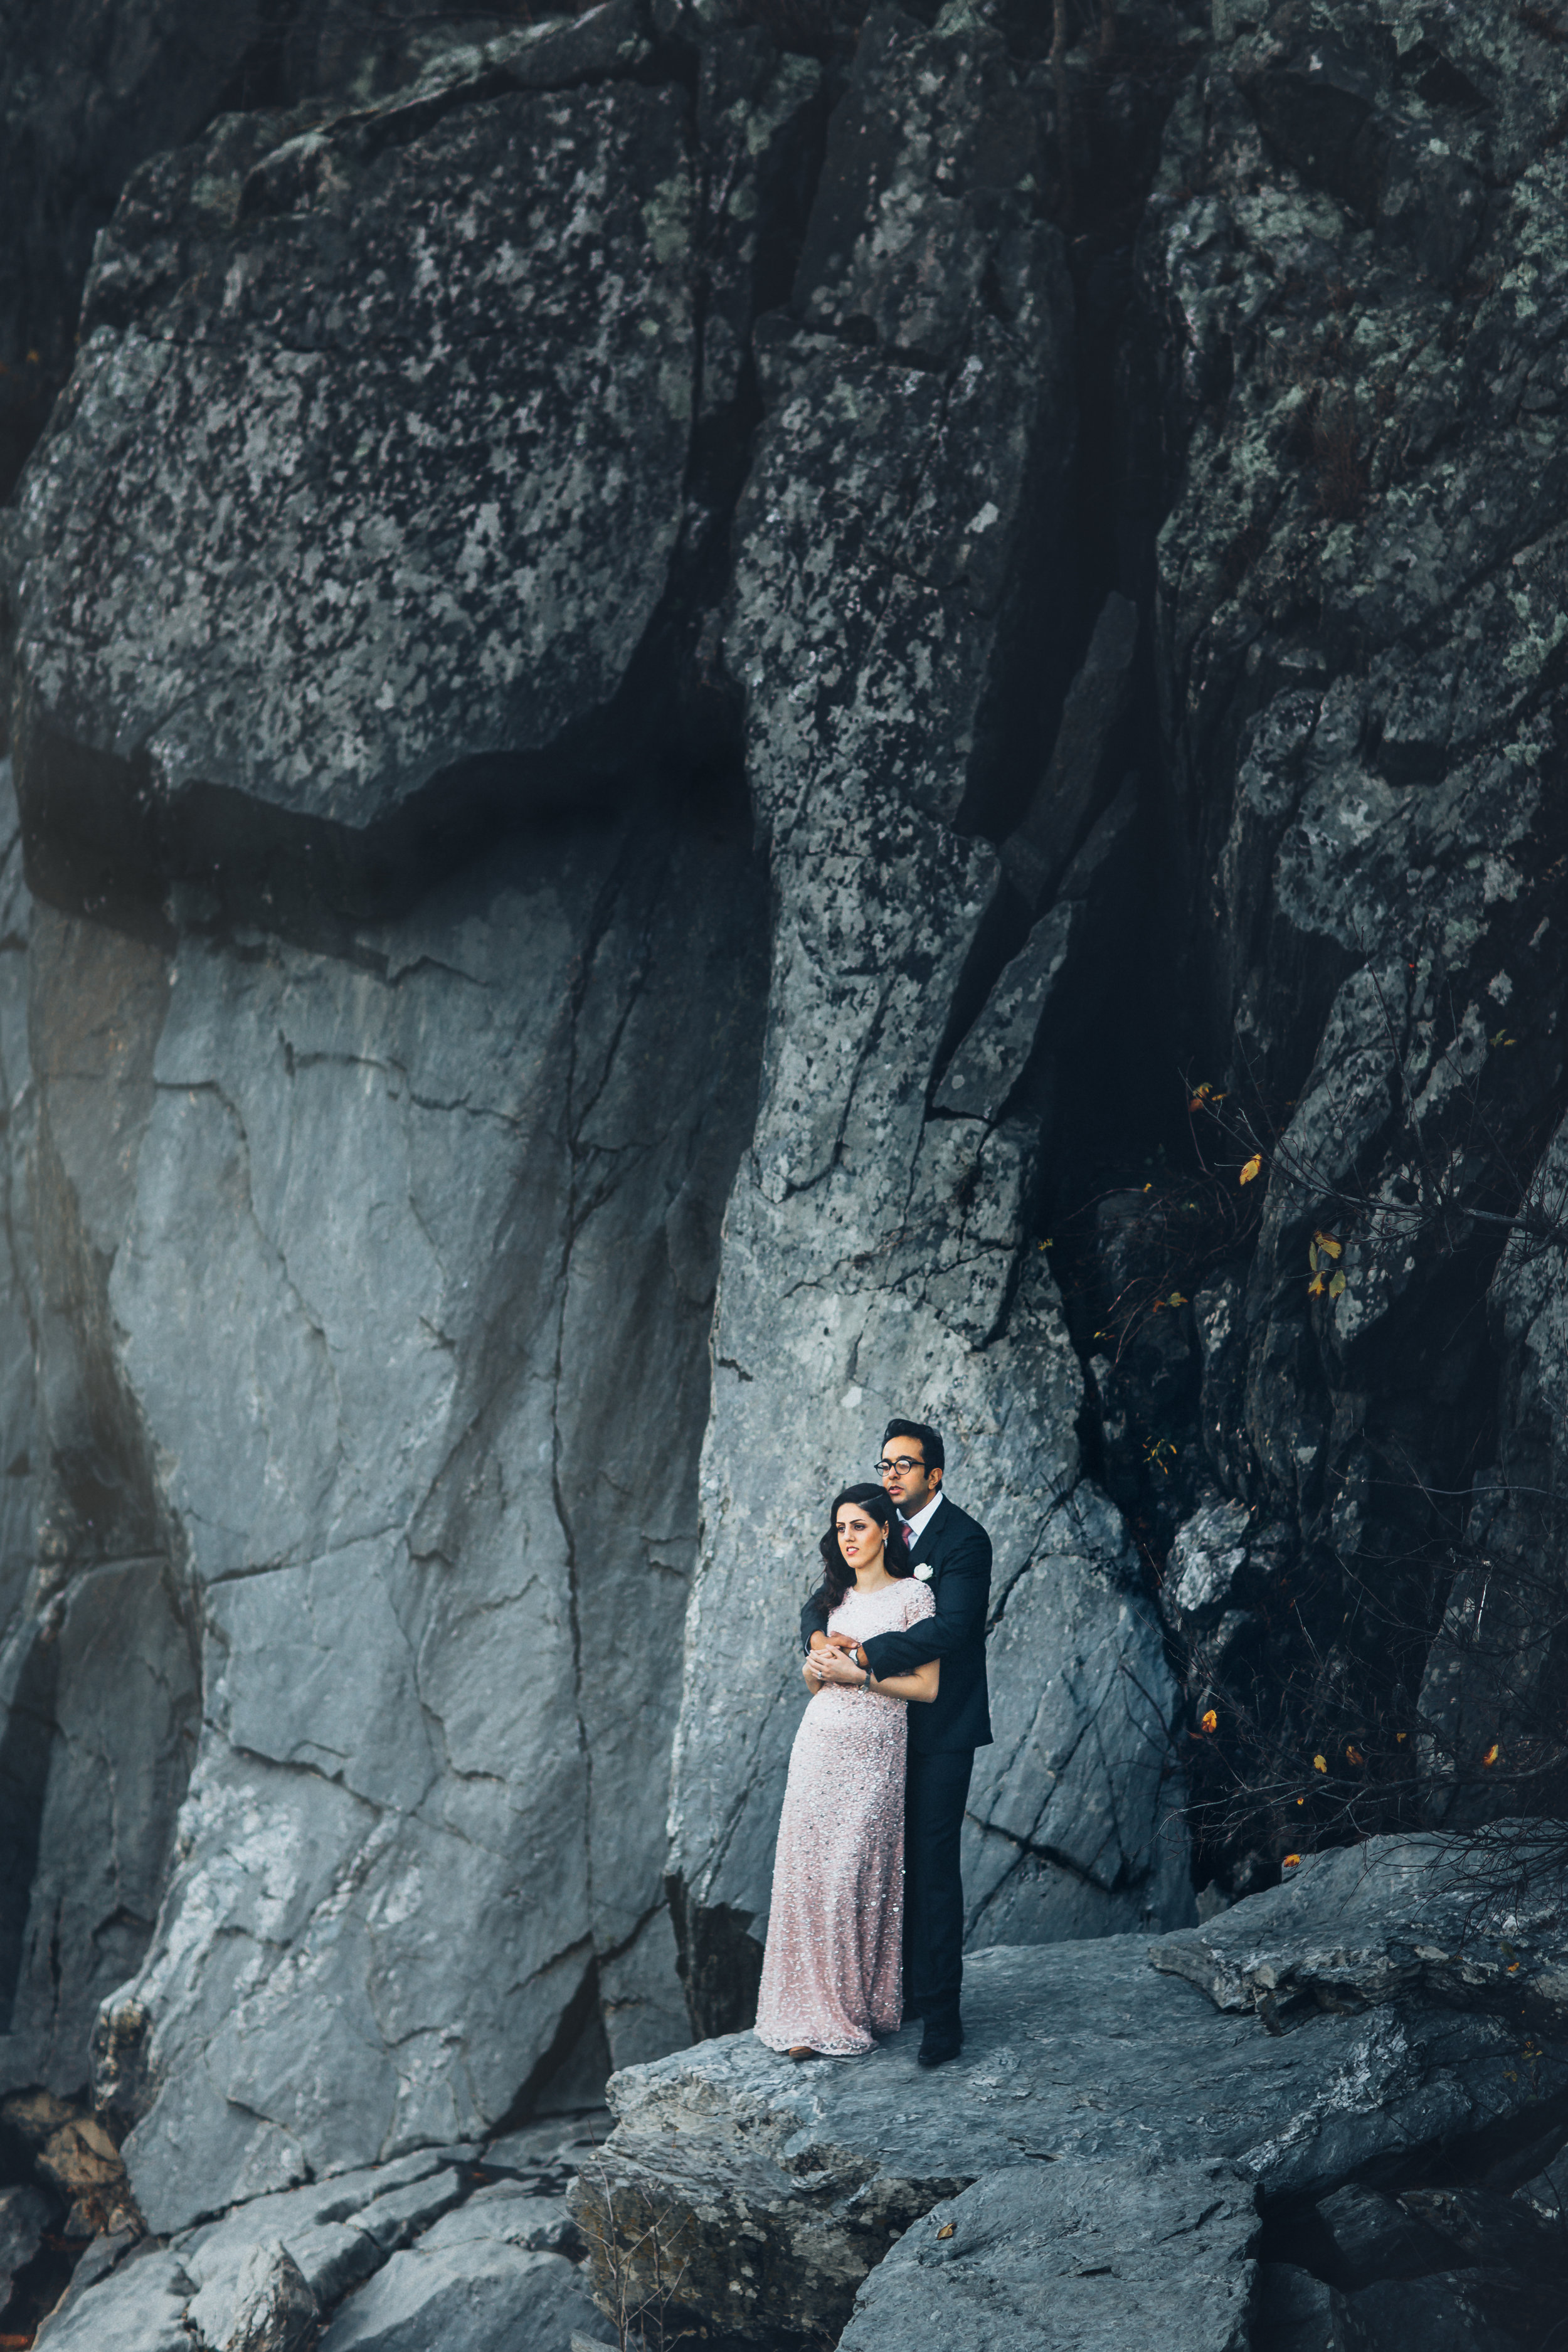 Brooklyn NYC Wedding Photographer Boris Zaretsky Elopement in Great Falls Park Virginia-176 copy.jpg